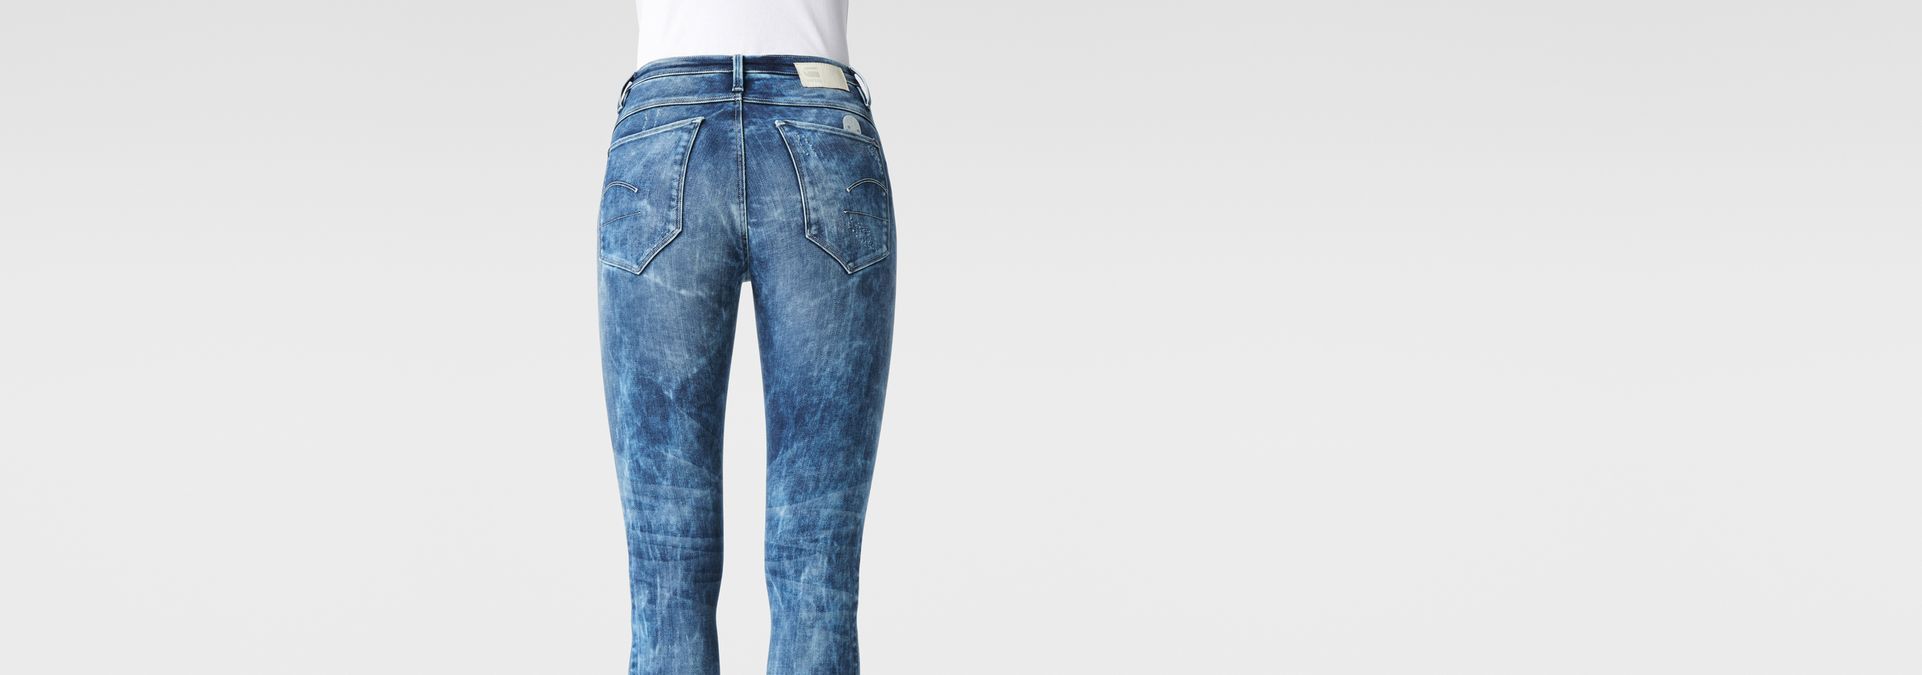 ... G-Star RAW® Raw For The Oceans - Type C Ultra High Waist Jeans